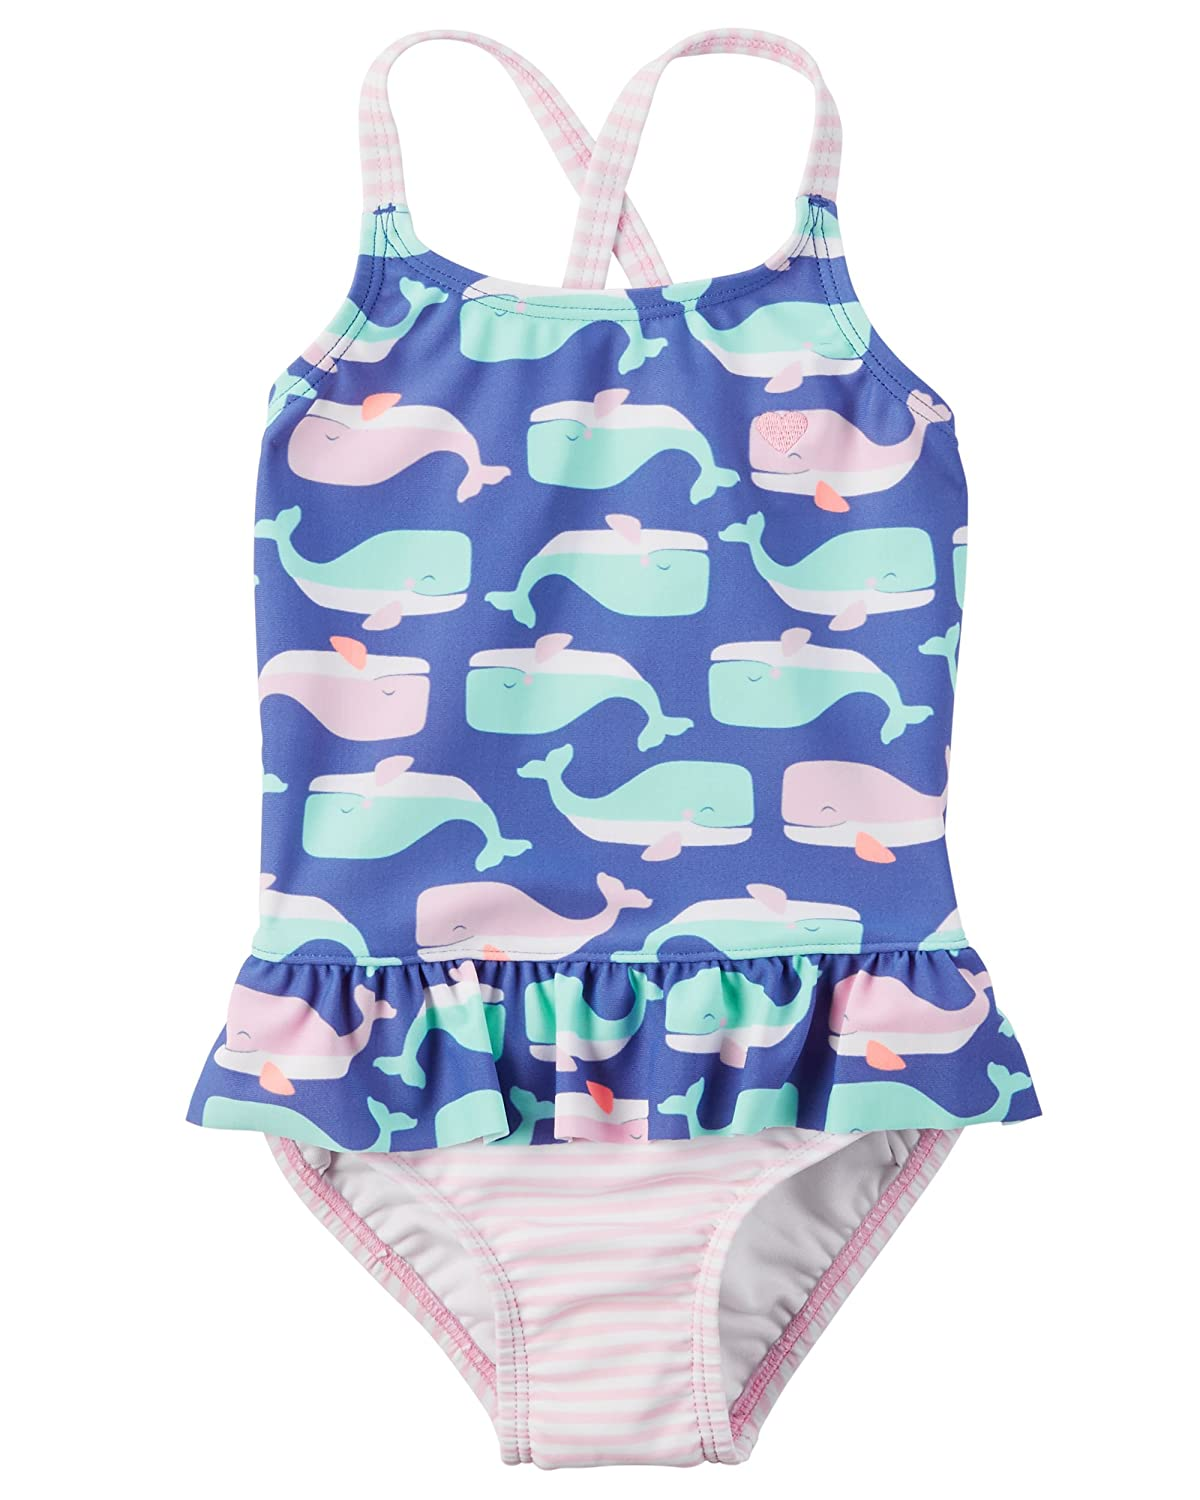 Carter's Baby Girls' Whale Ruffle Swimsuit, 24 Months